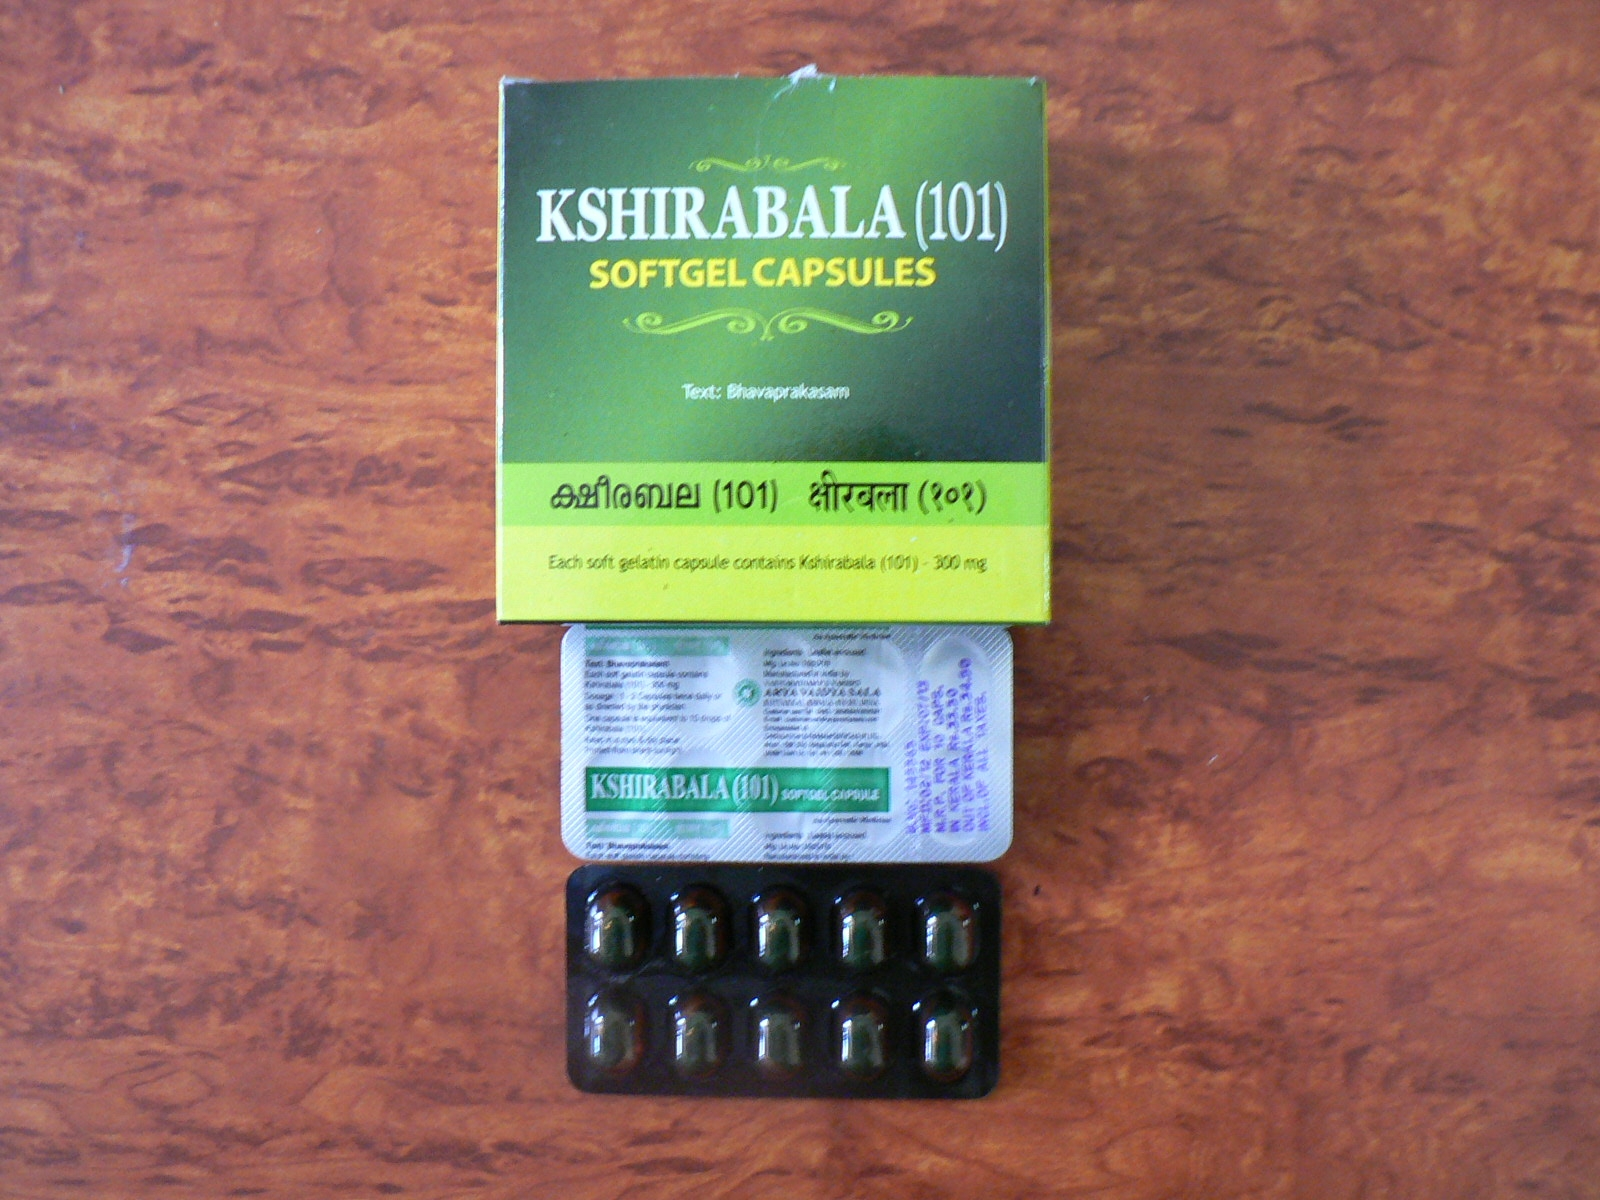 <b>KSHIRABALA (101) SOFTGEL CAPSULES</B><BR>AVS - 1 blister of 10 softgel capsules